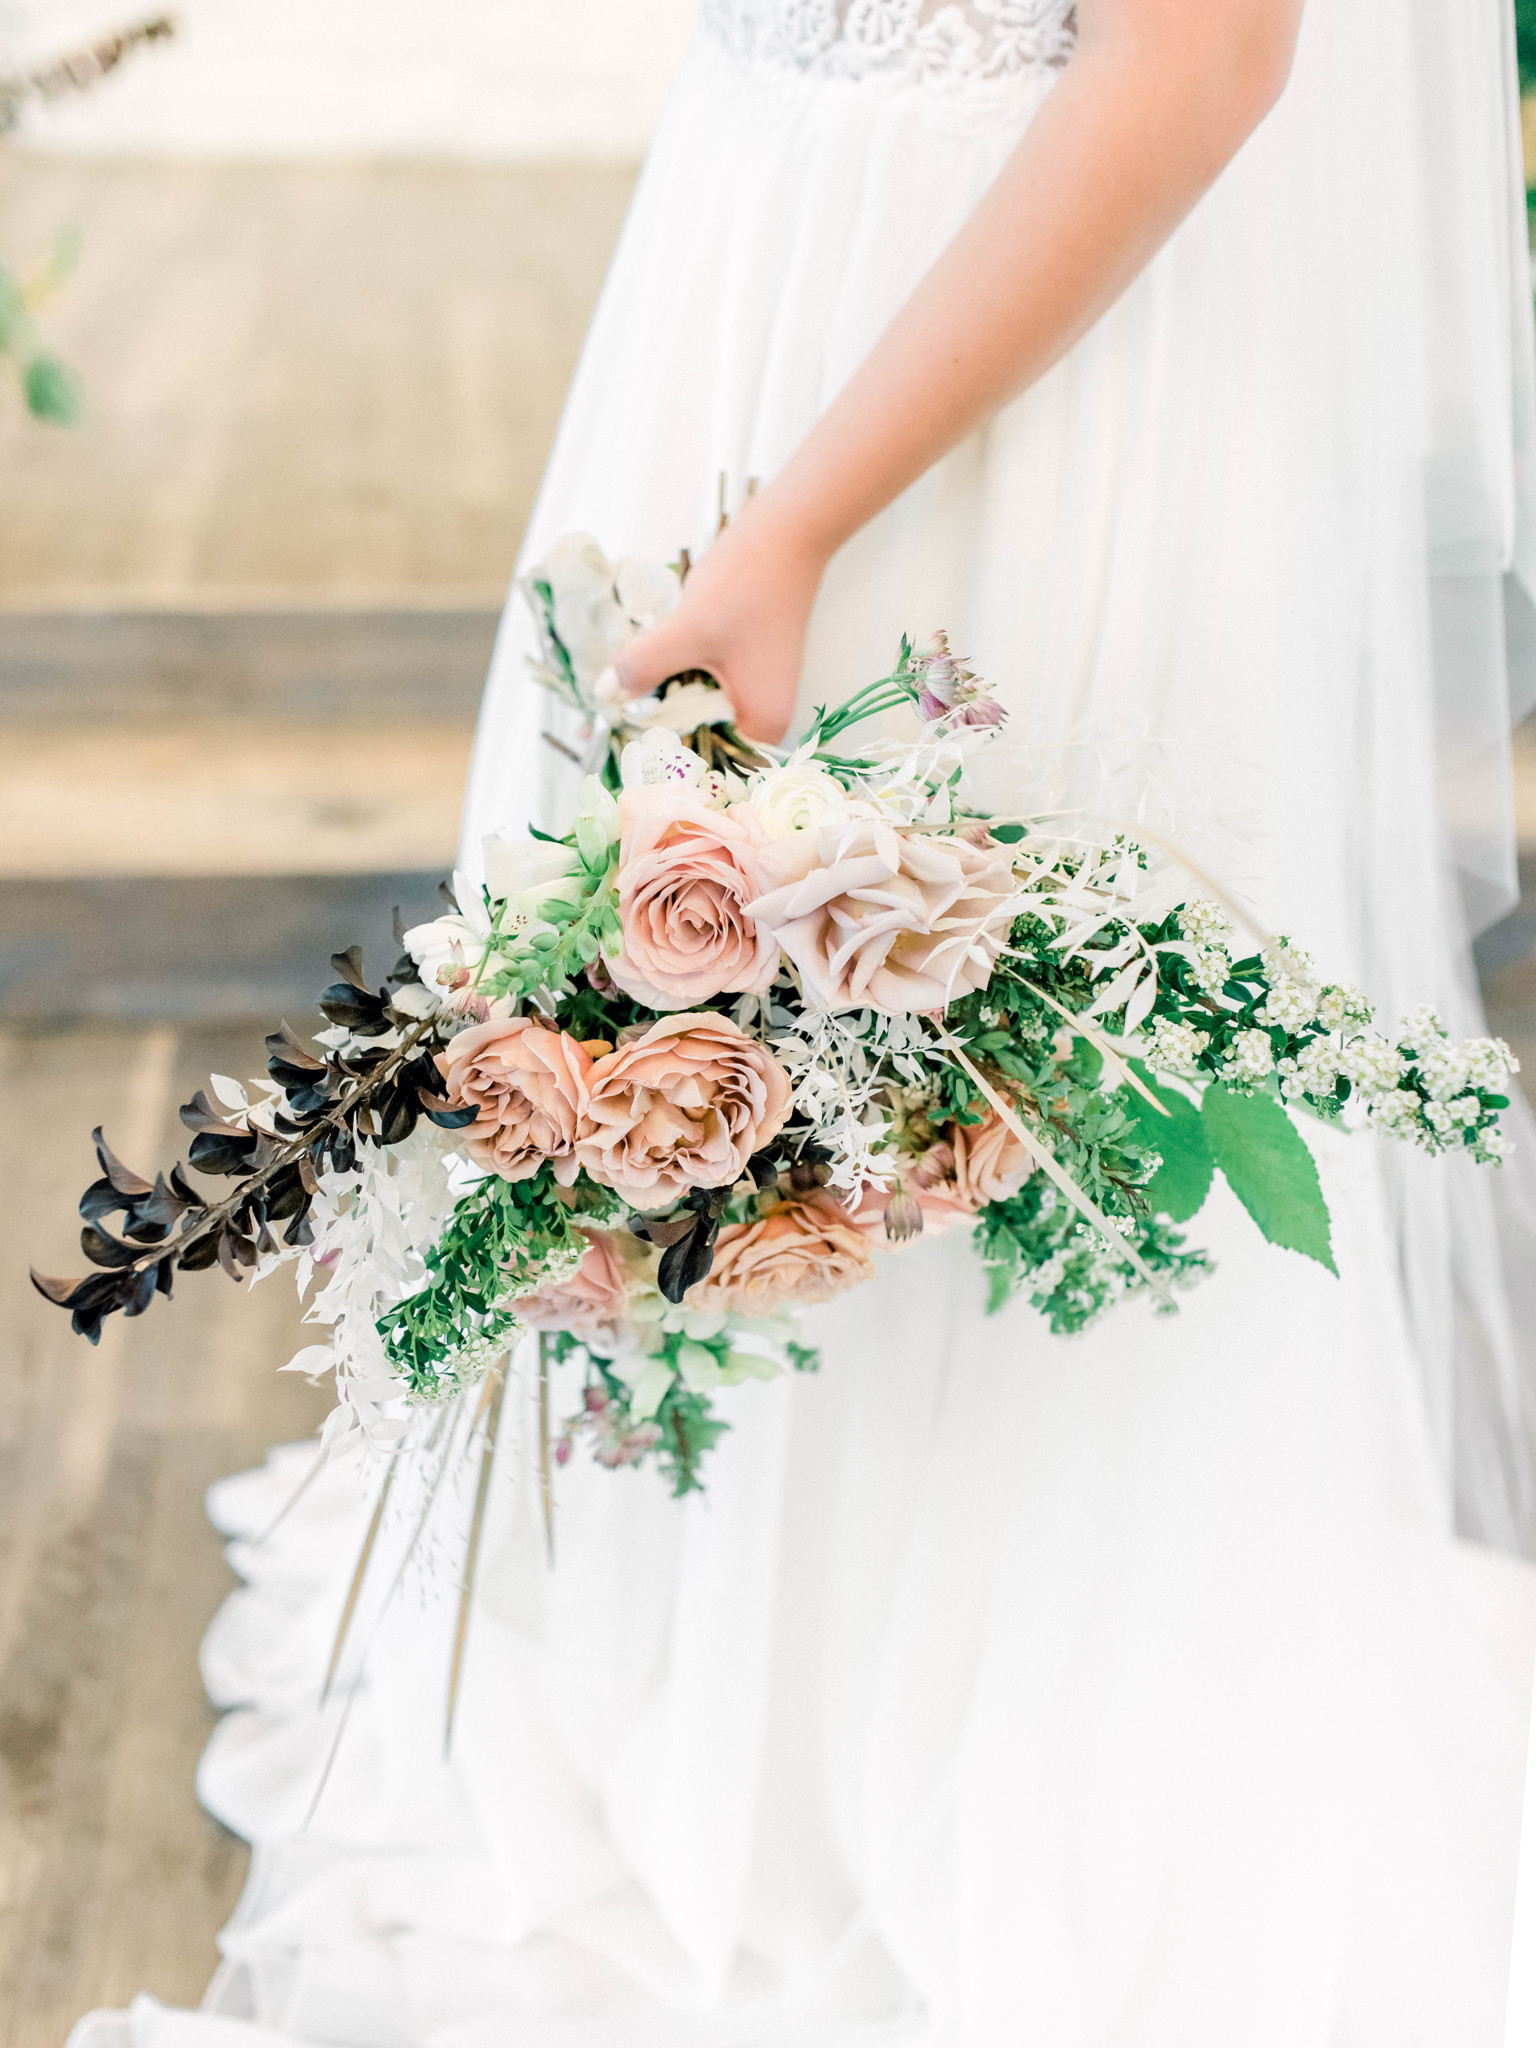 Pink and greenery wedding bouquet: Whimsical mauve wedding inspiration on Alexa Kay Events. See more romantic wedding ideas at alexakayevents.com!